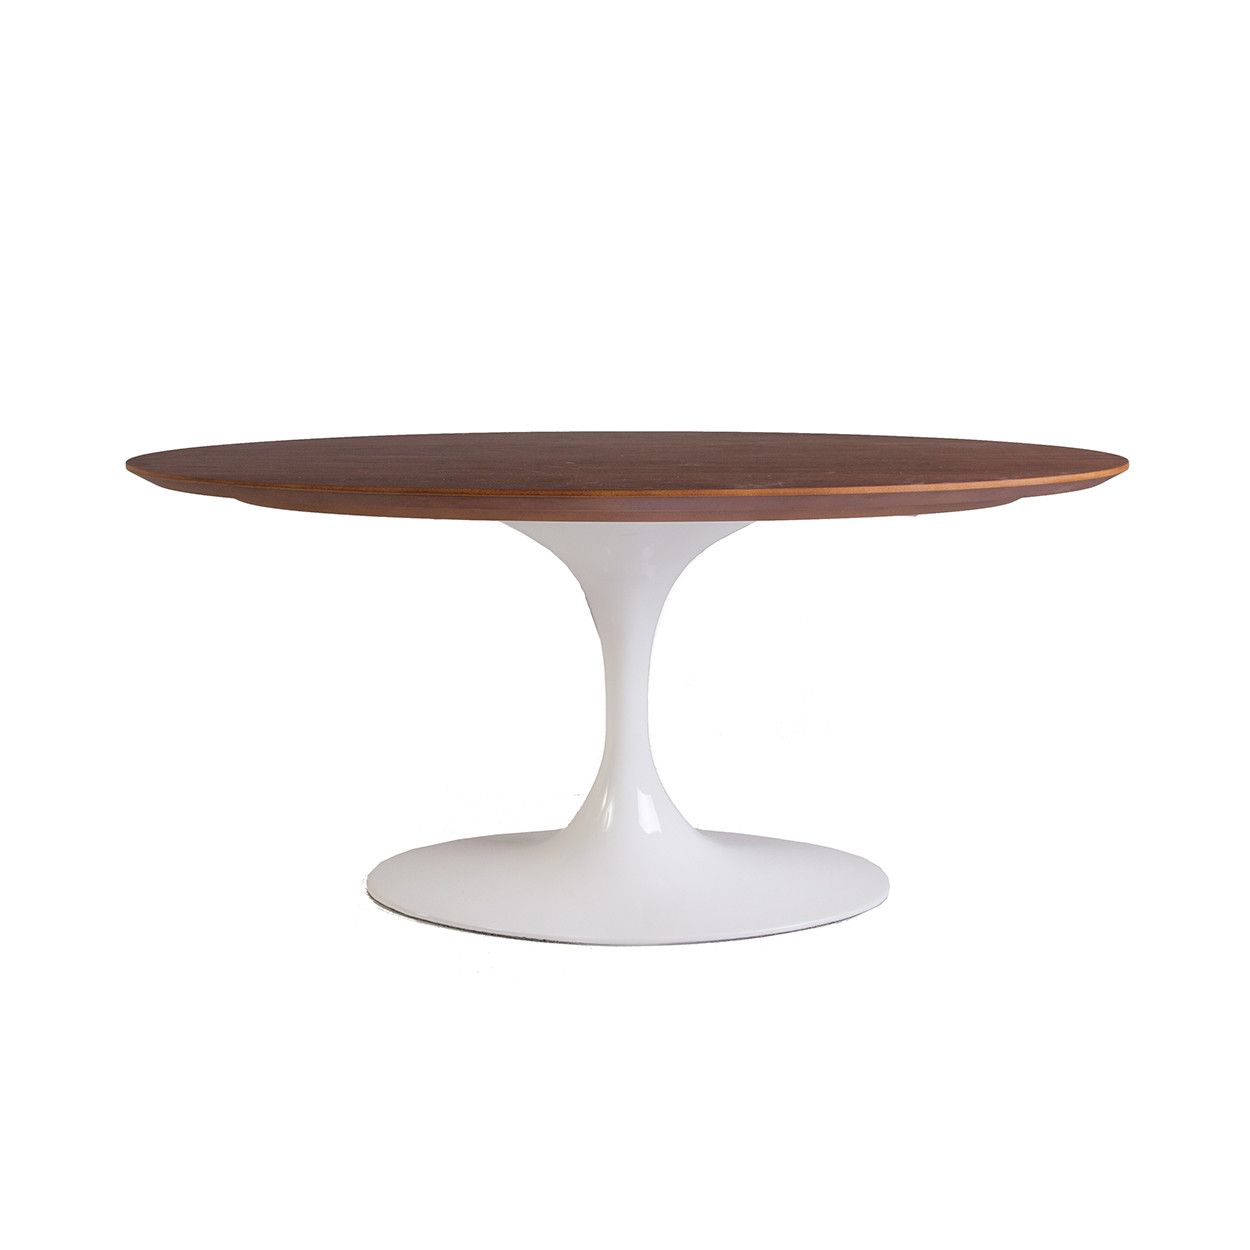 Mid Century Modern Reproduction Walnut Tulip Coffee Table 42 Oval Inspired By Ee Tulip Coffee Table Mid Century Modern Coffee Table Mid Century Kitchen Table [ 1250 x 1250 Pixel ]